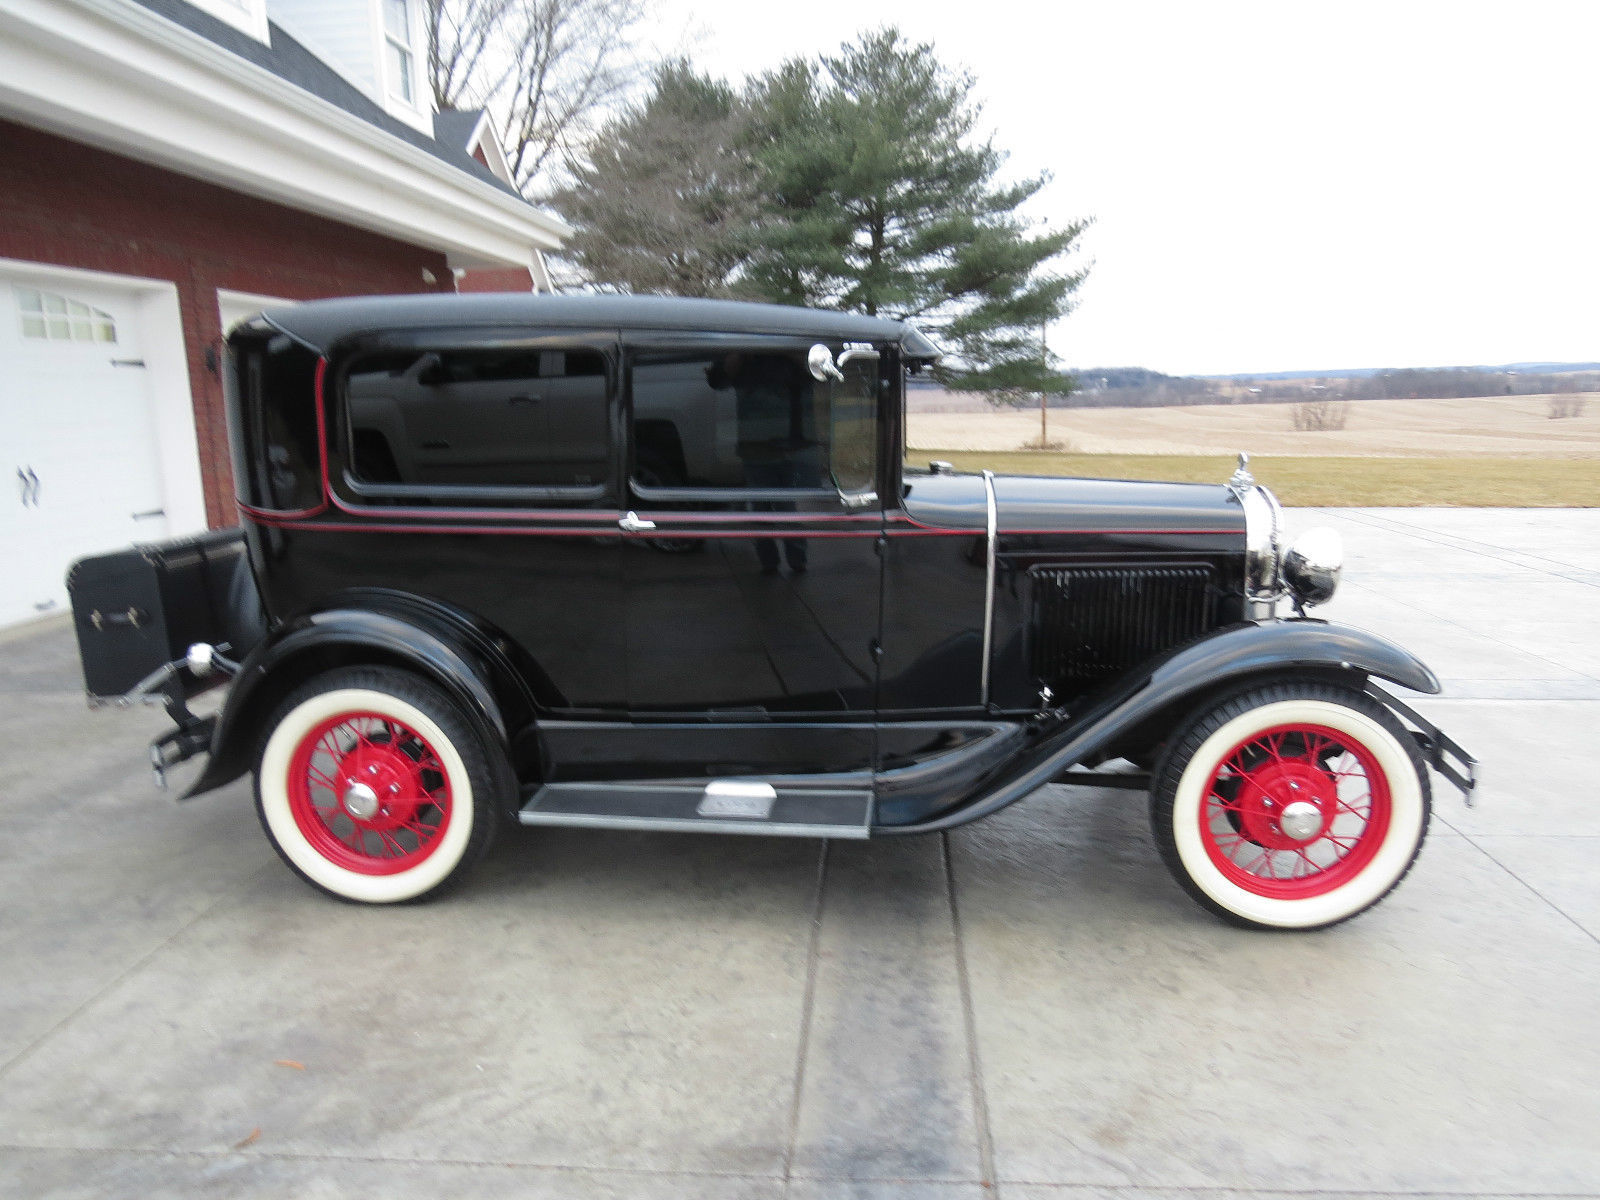 1930 ford model a 2 door sedan restored antique car For1930 Ford Model A Two Door Sedan